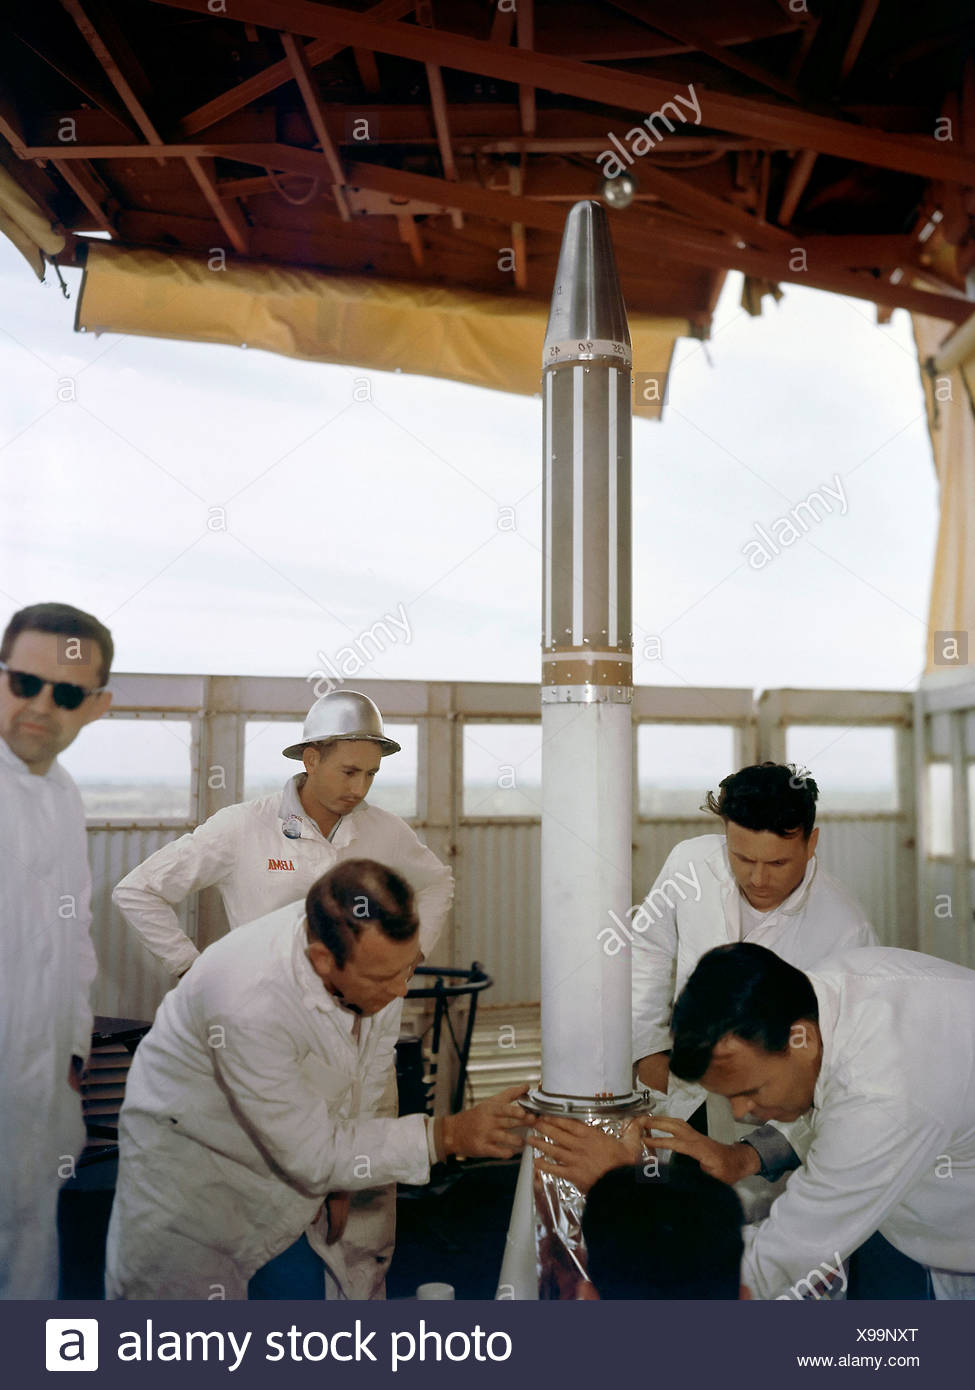 Installing Explorer 1 Prior to Launch - Stock Image